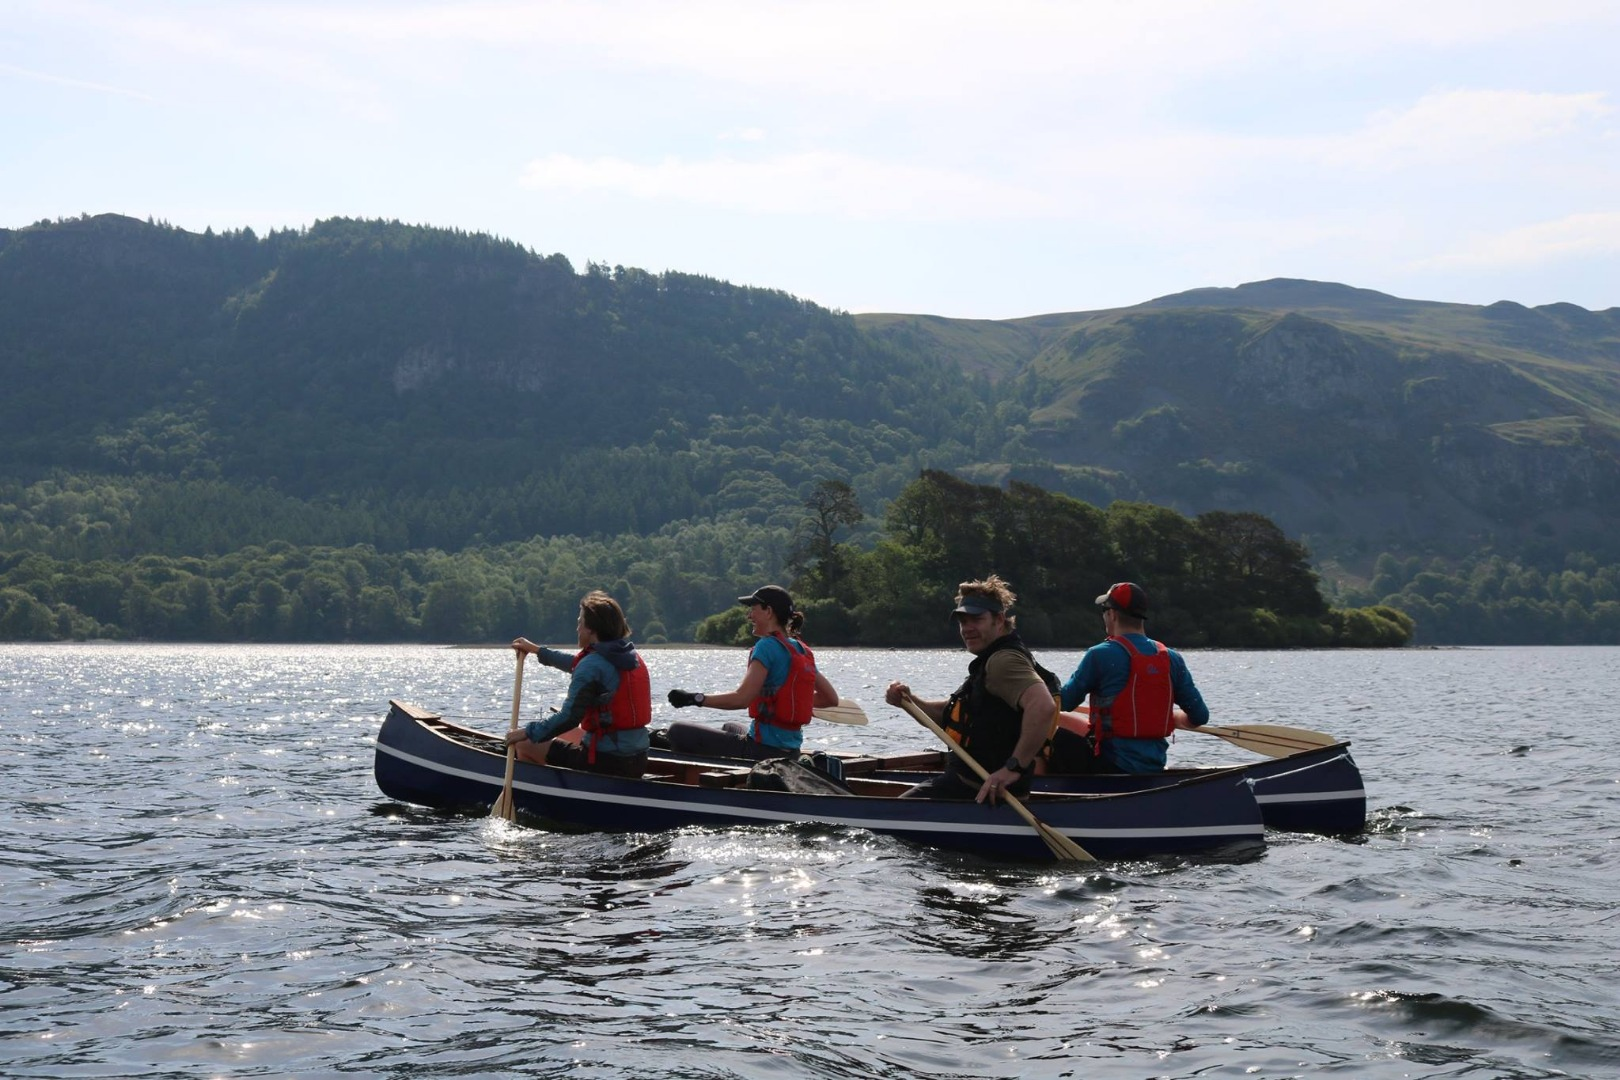 George Fisher staff canoe on Derwentwater